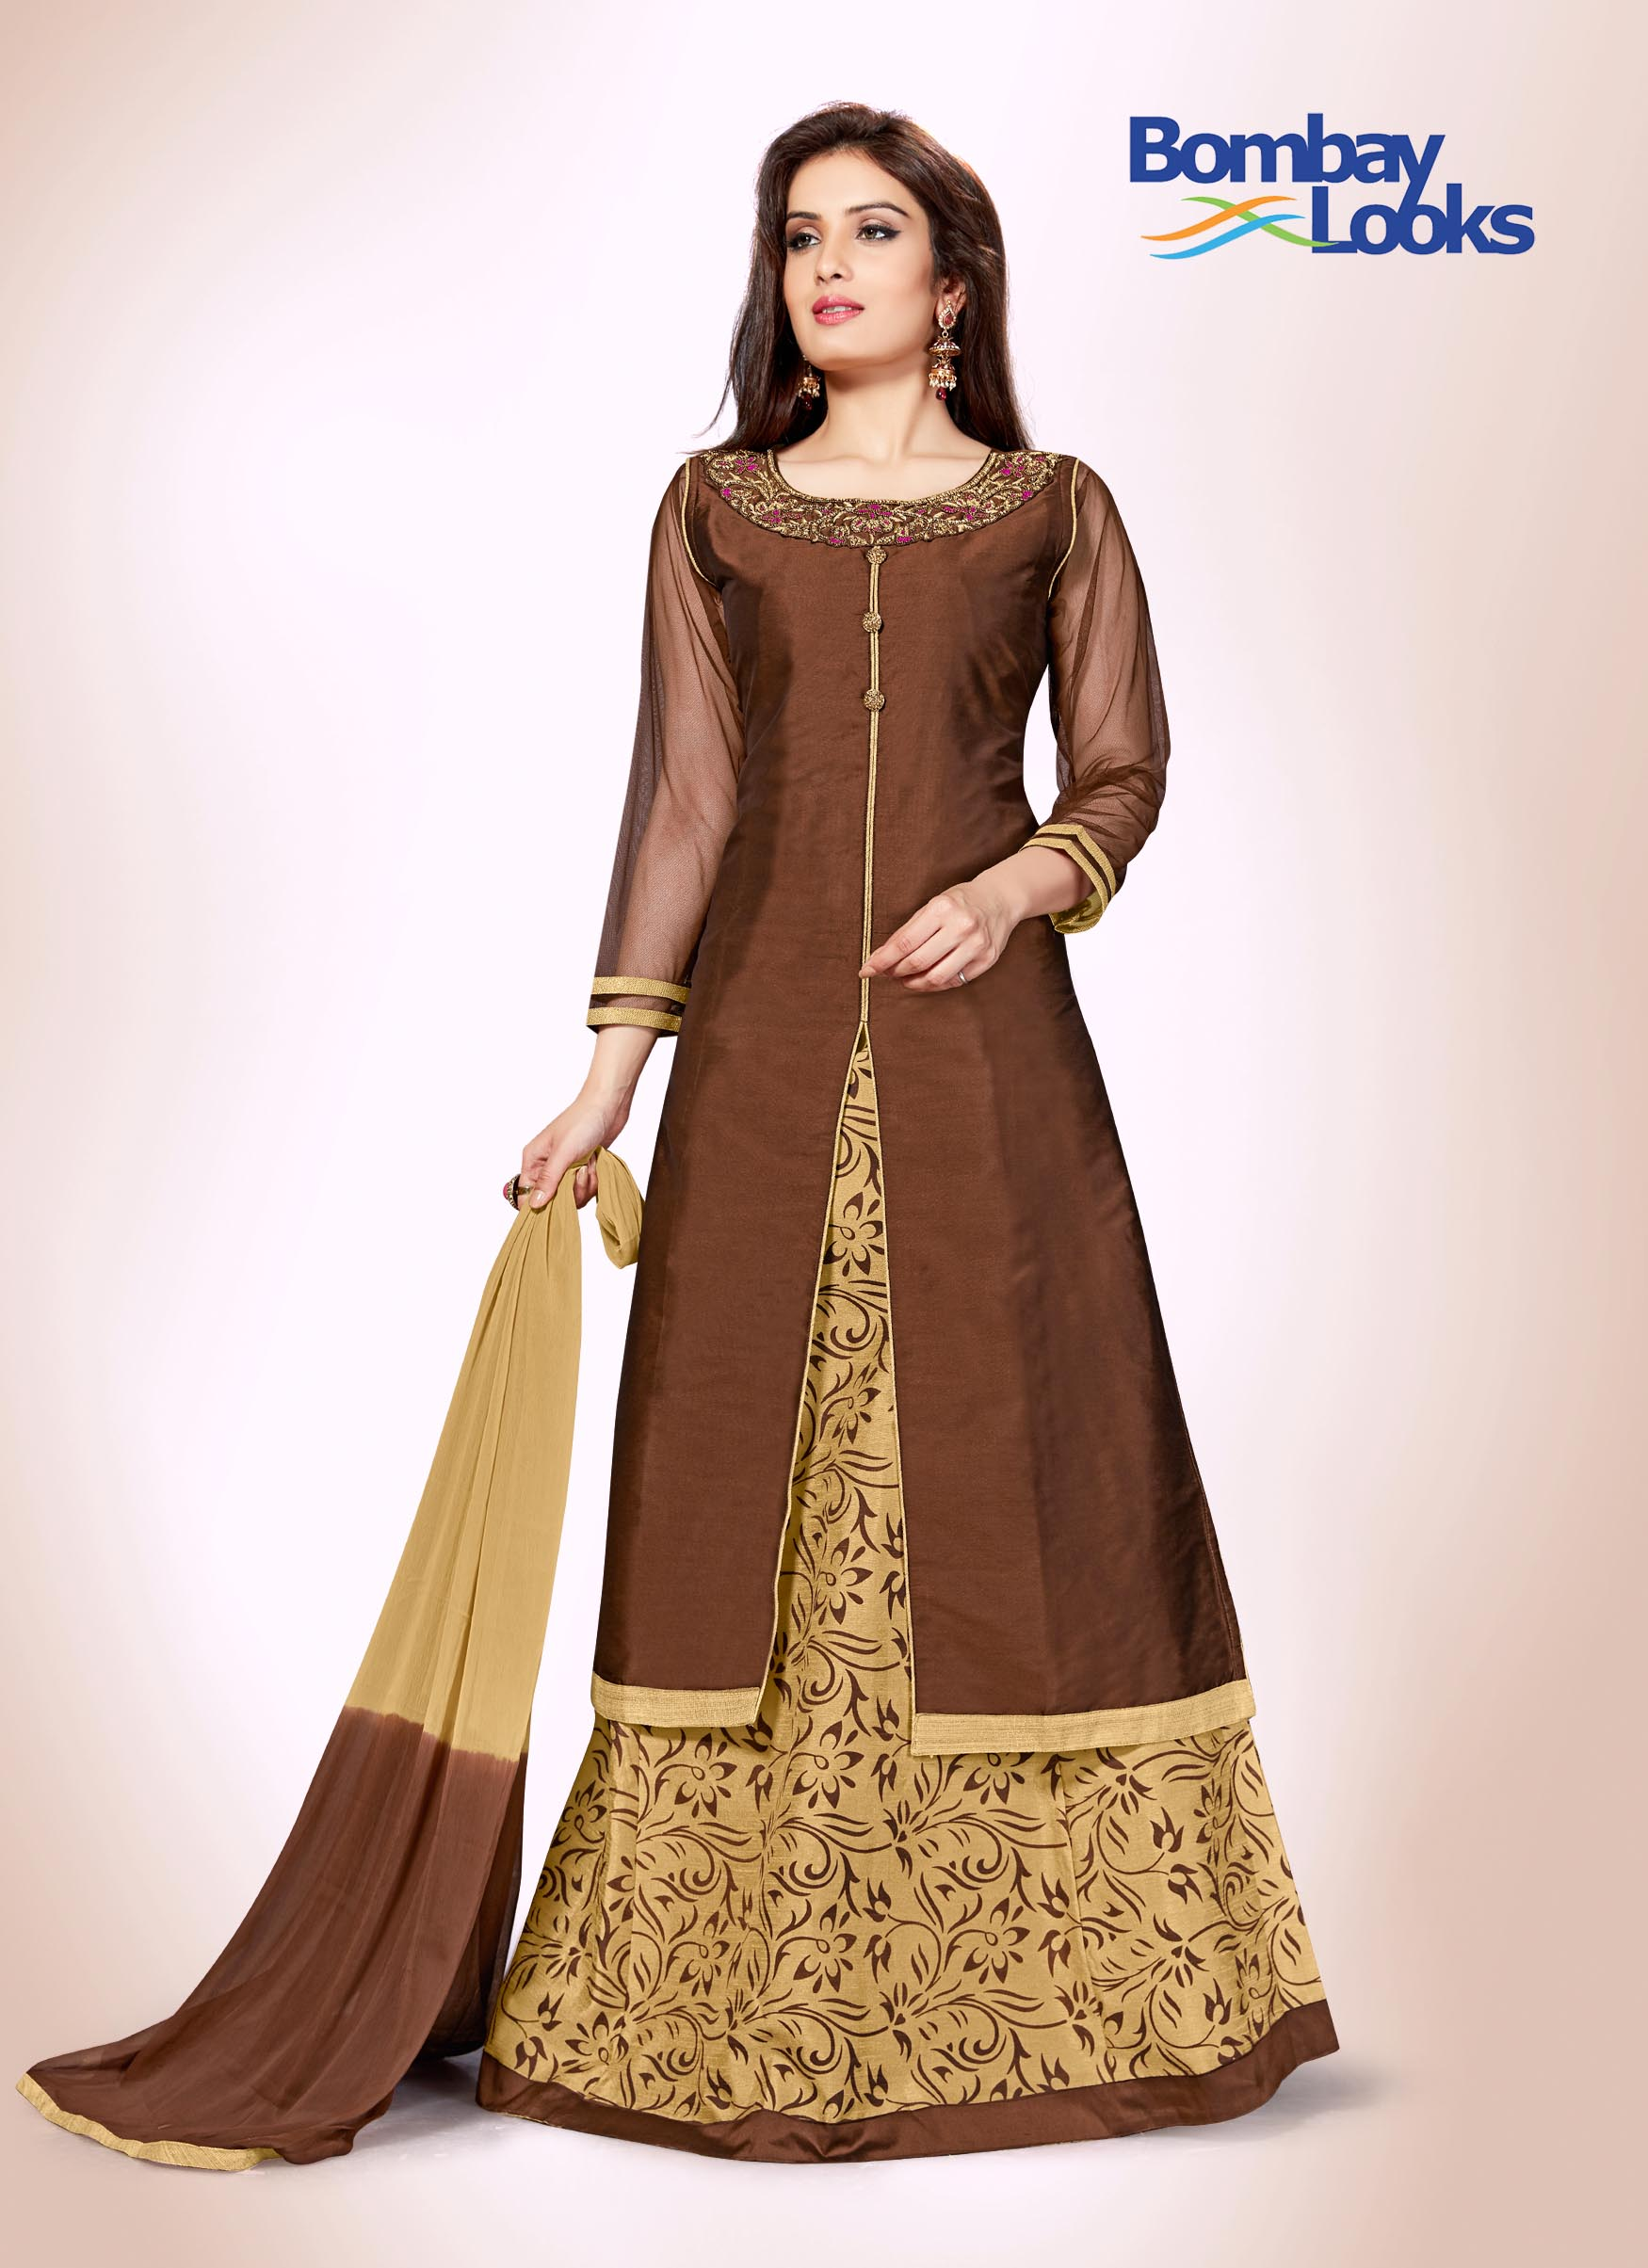 Chocolate brown and gold suit set with gold skirt bottom